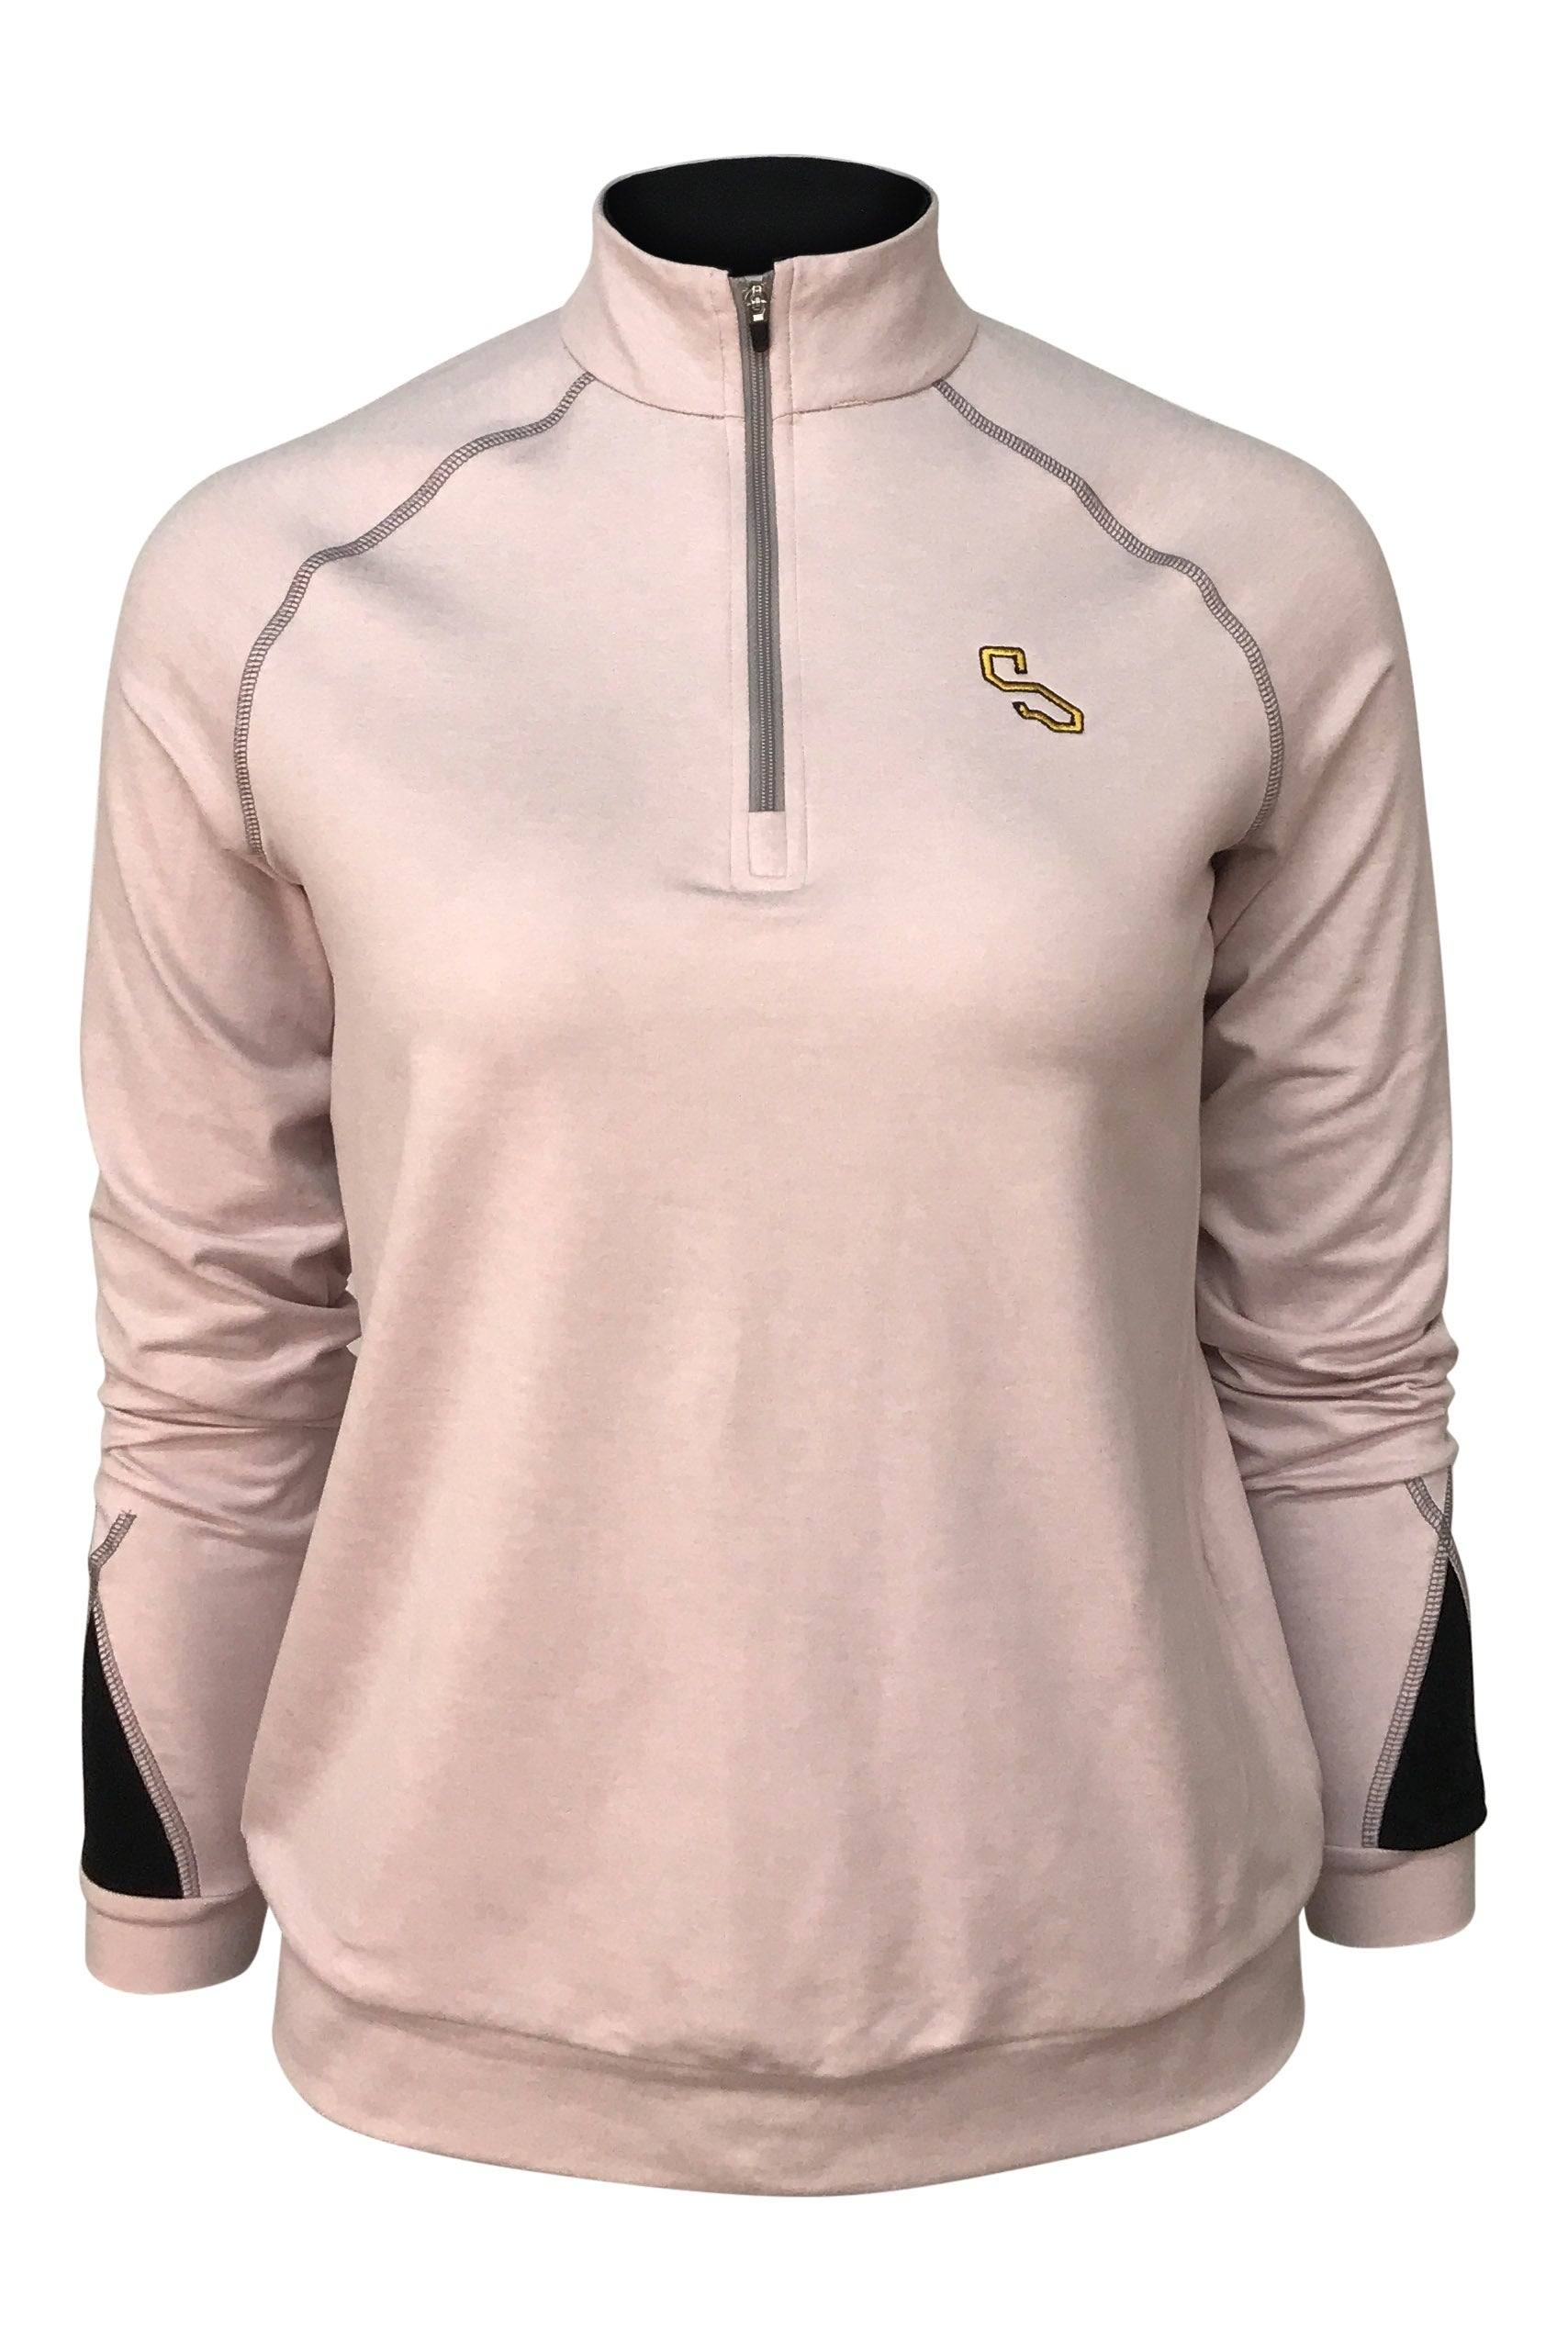 FILLMORE QUARTER ZIP -  DUSK PINK